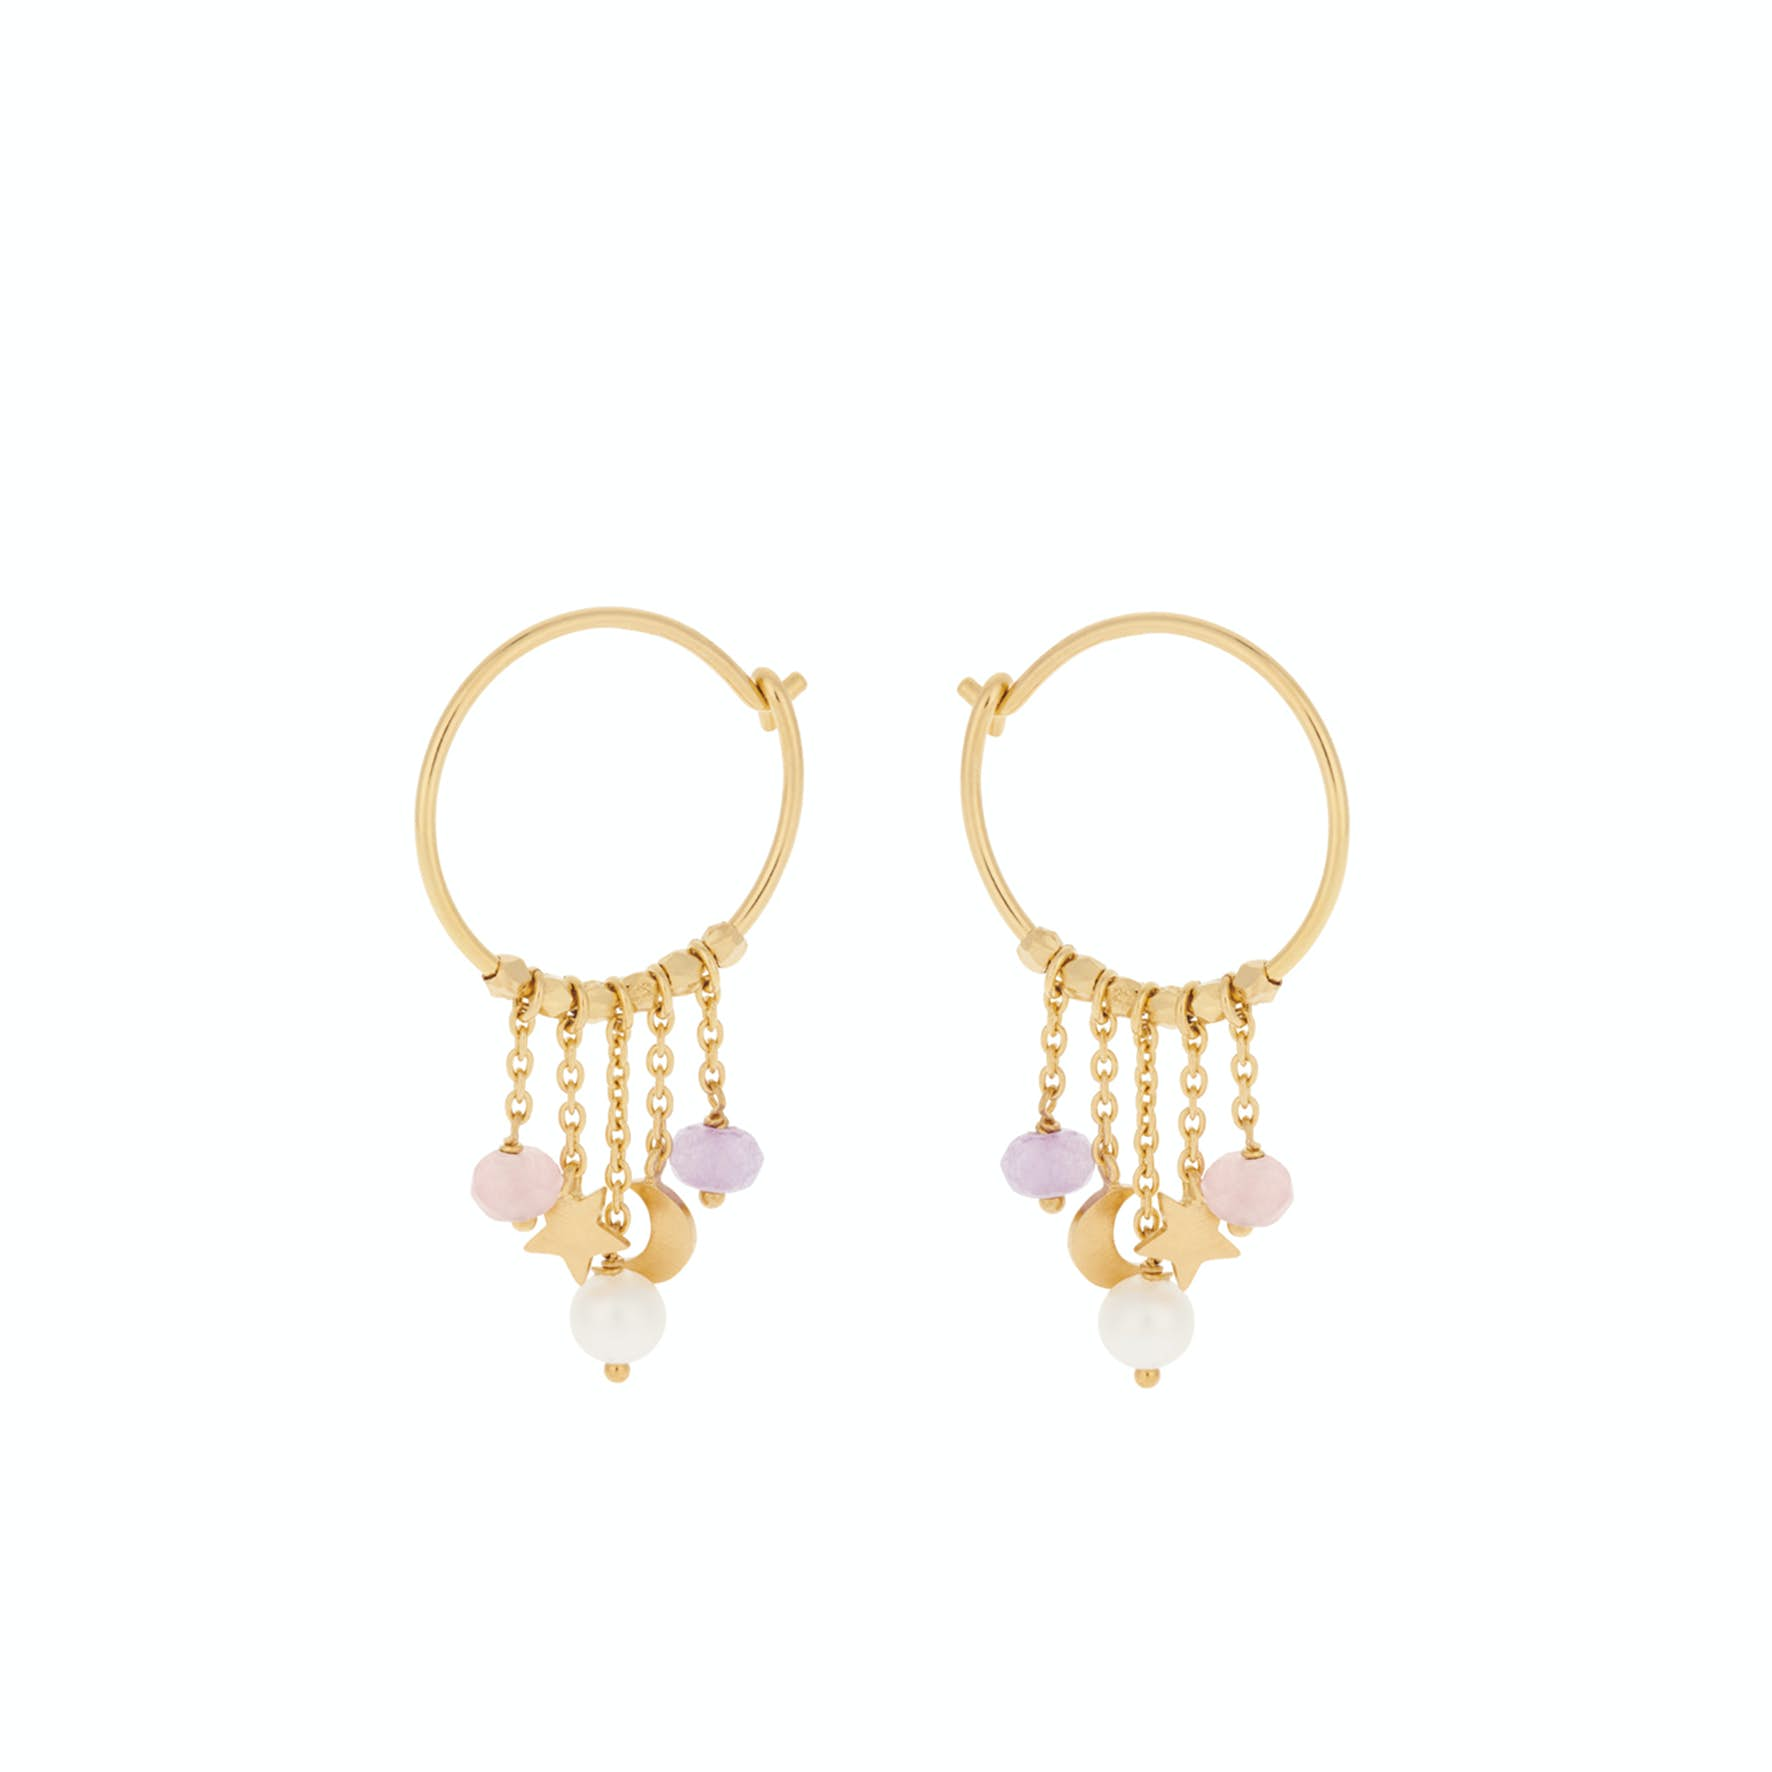 Pastel Dream Hoops from Pernille Corydon in Goldplated-Silver Sterling 925| Freshwater Pearl, Purple Agate,Pink Agate